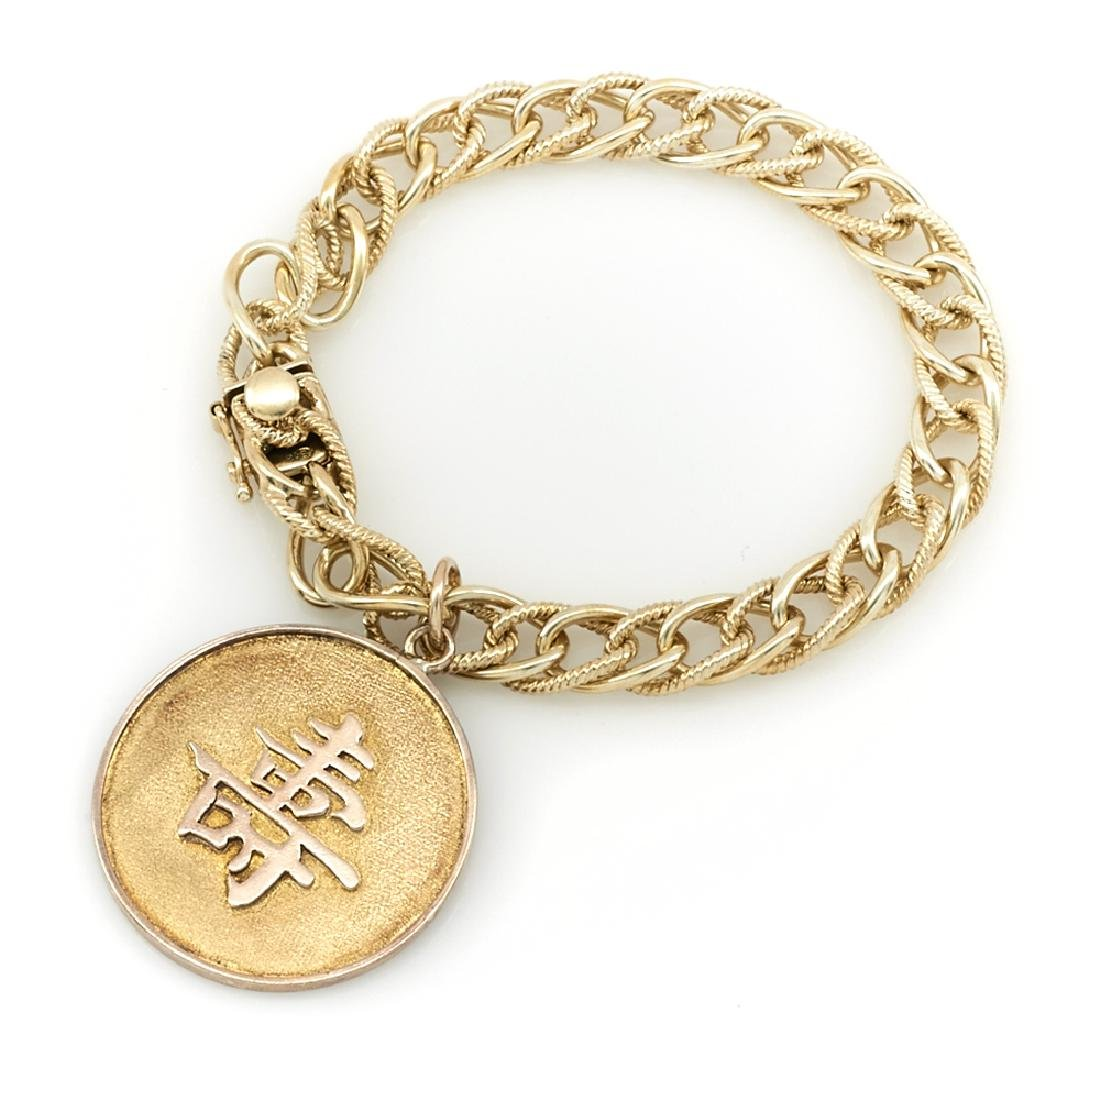 14k Yellow gold bracelet with Chinese charm